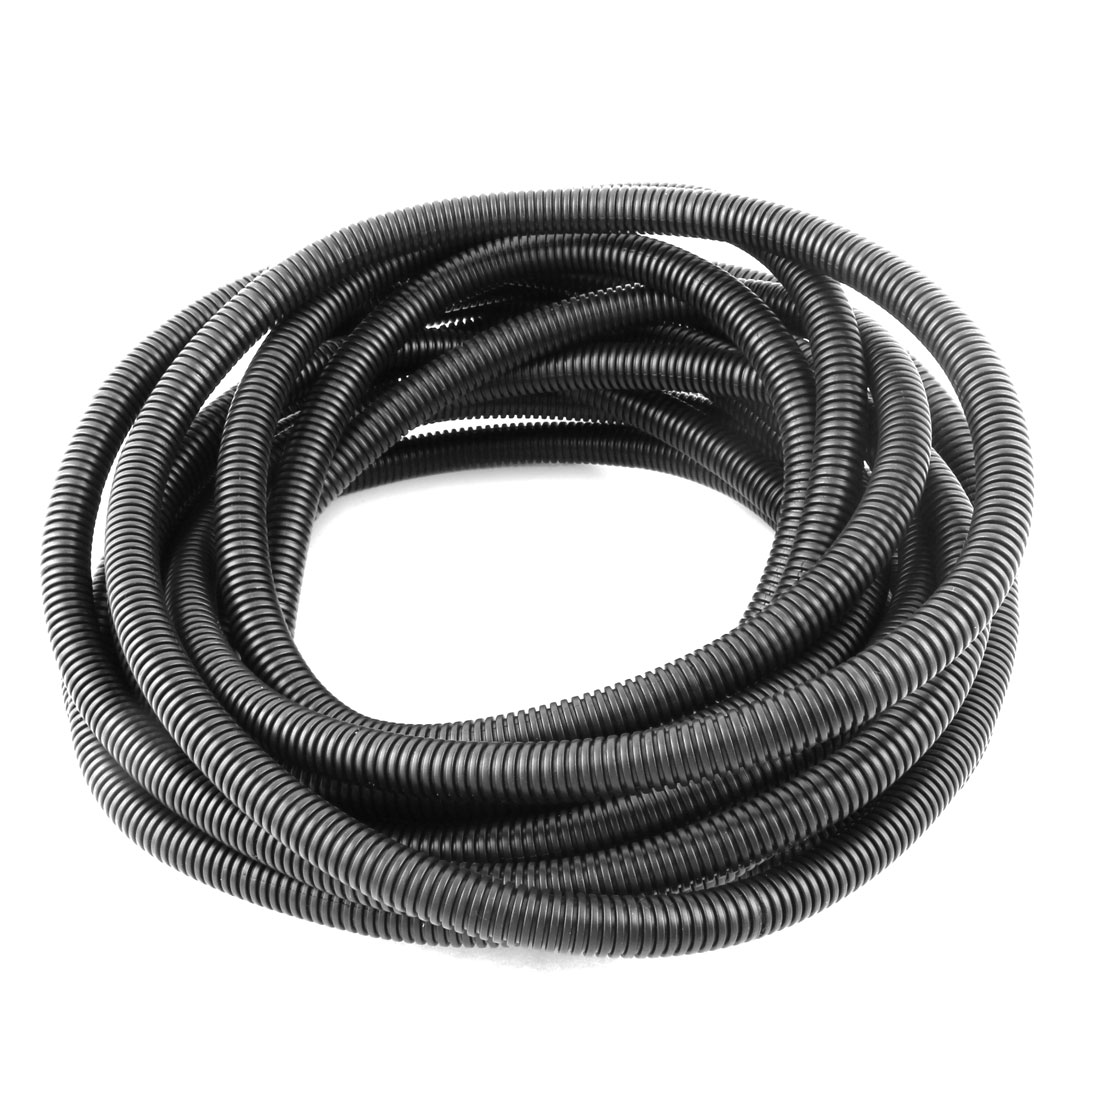 Black Plastic 12mm x 16mm Flexible Corrugated Conduit Pipe Hose Tube 10M Long